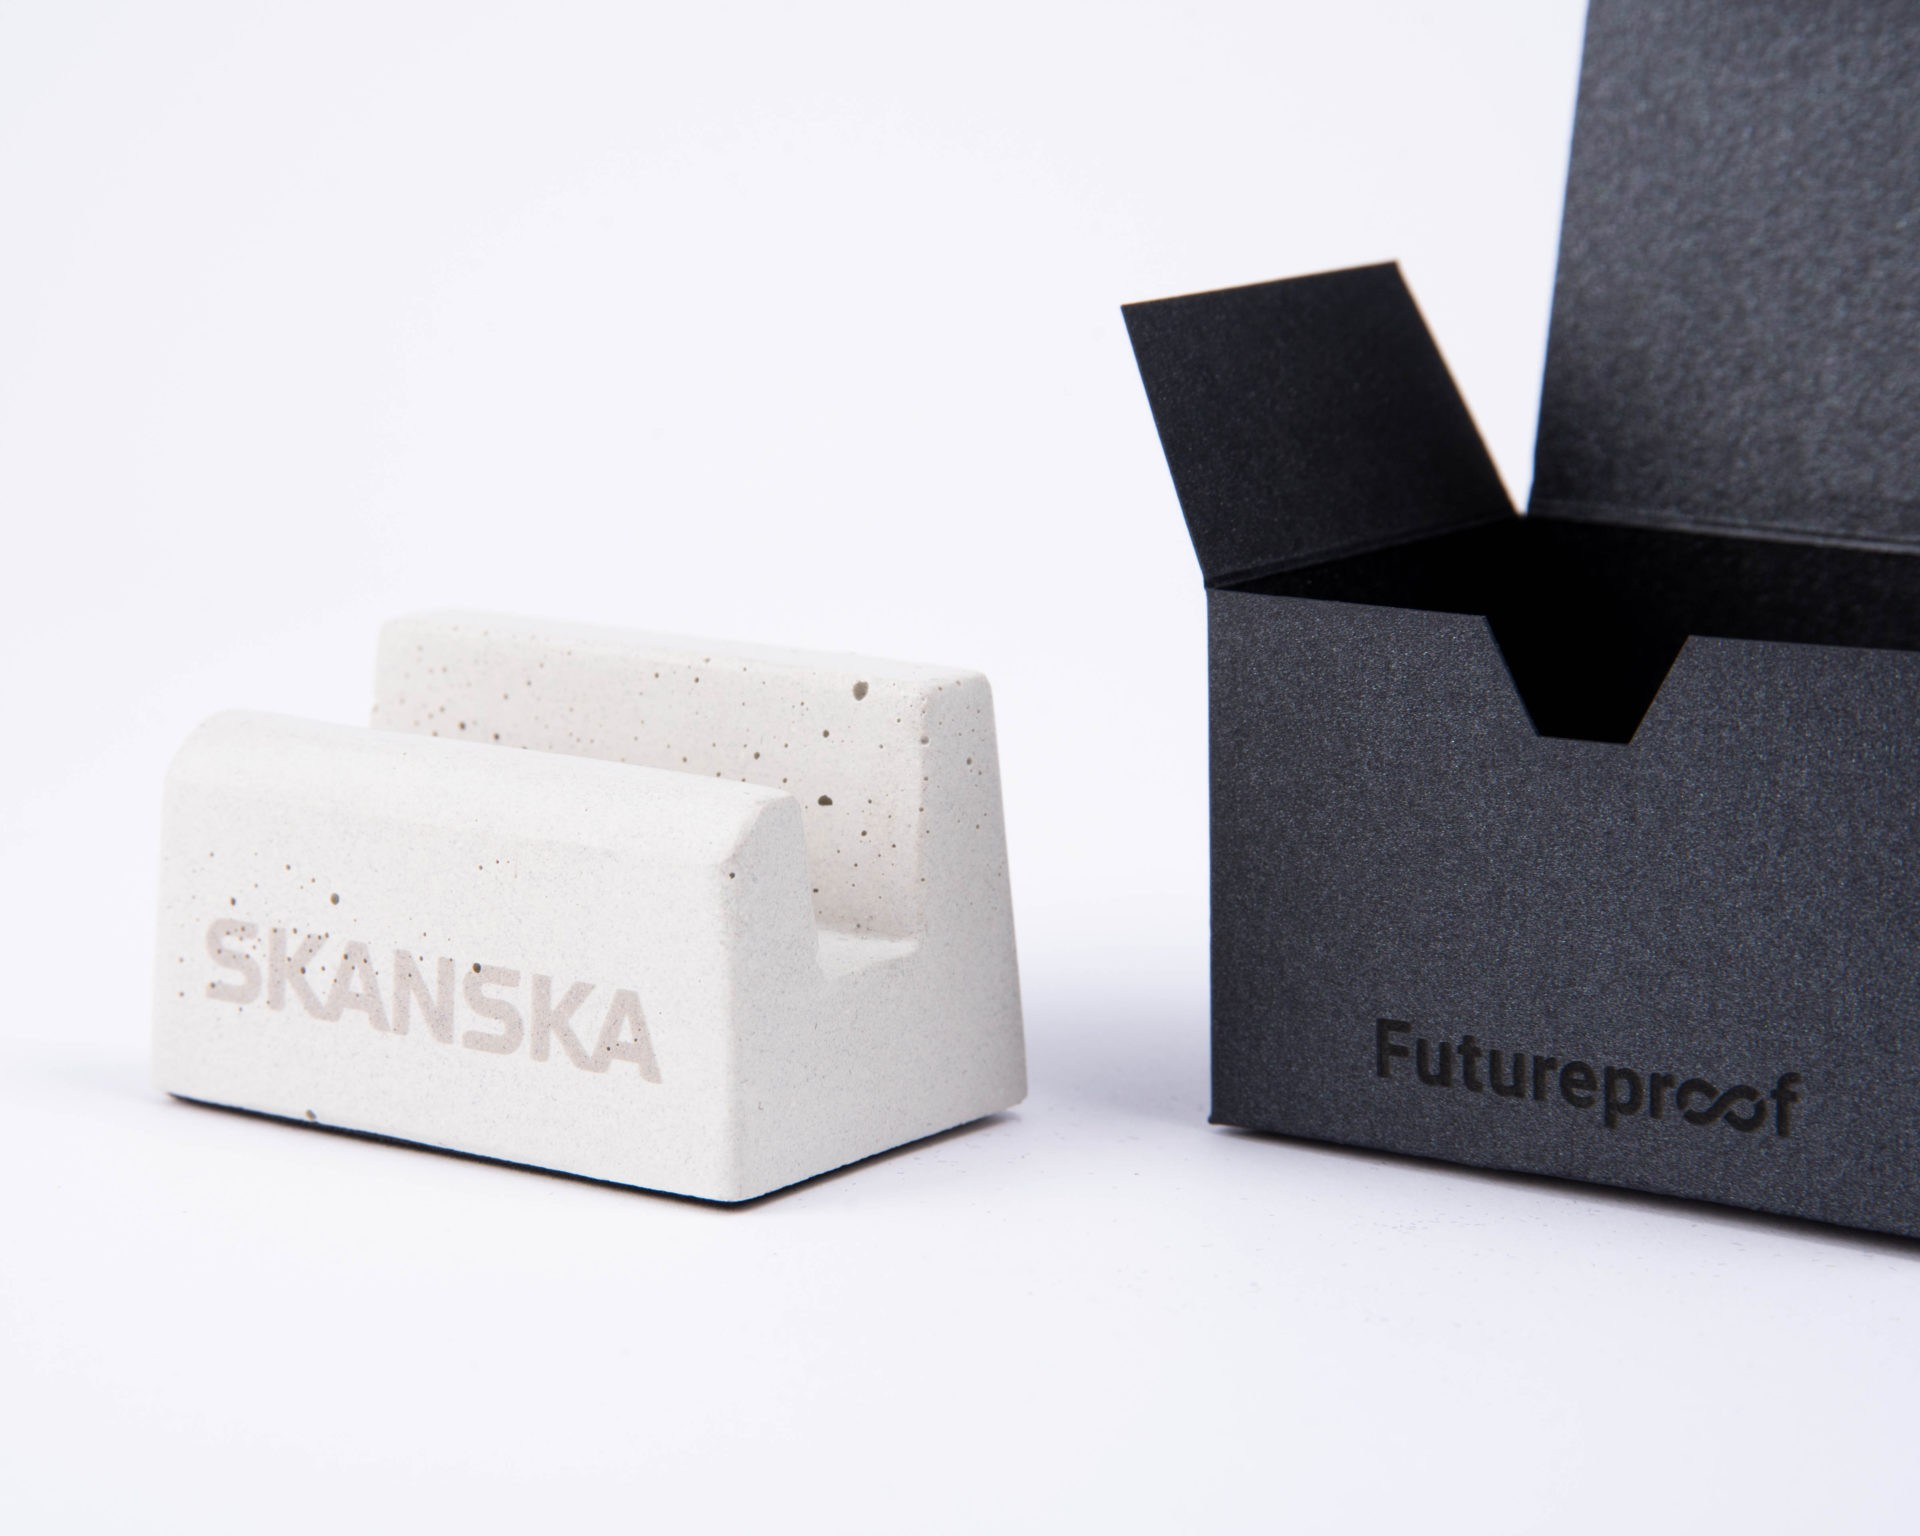 Exclusive business gift with Skanska logo and custom made packaging